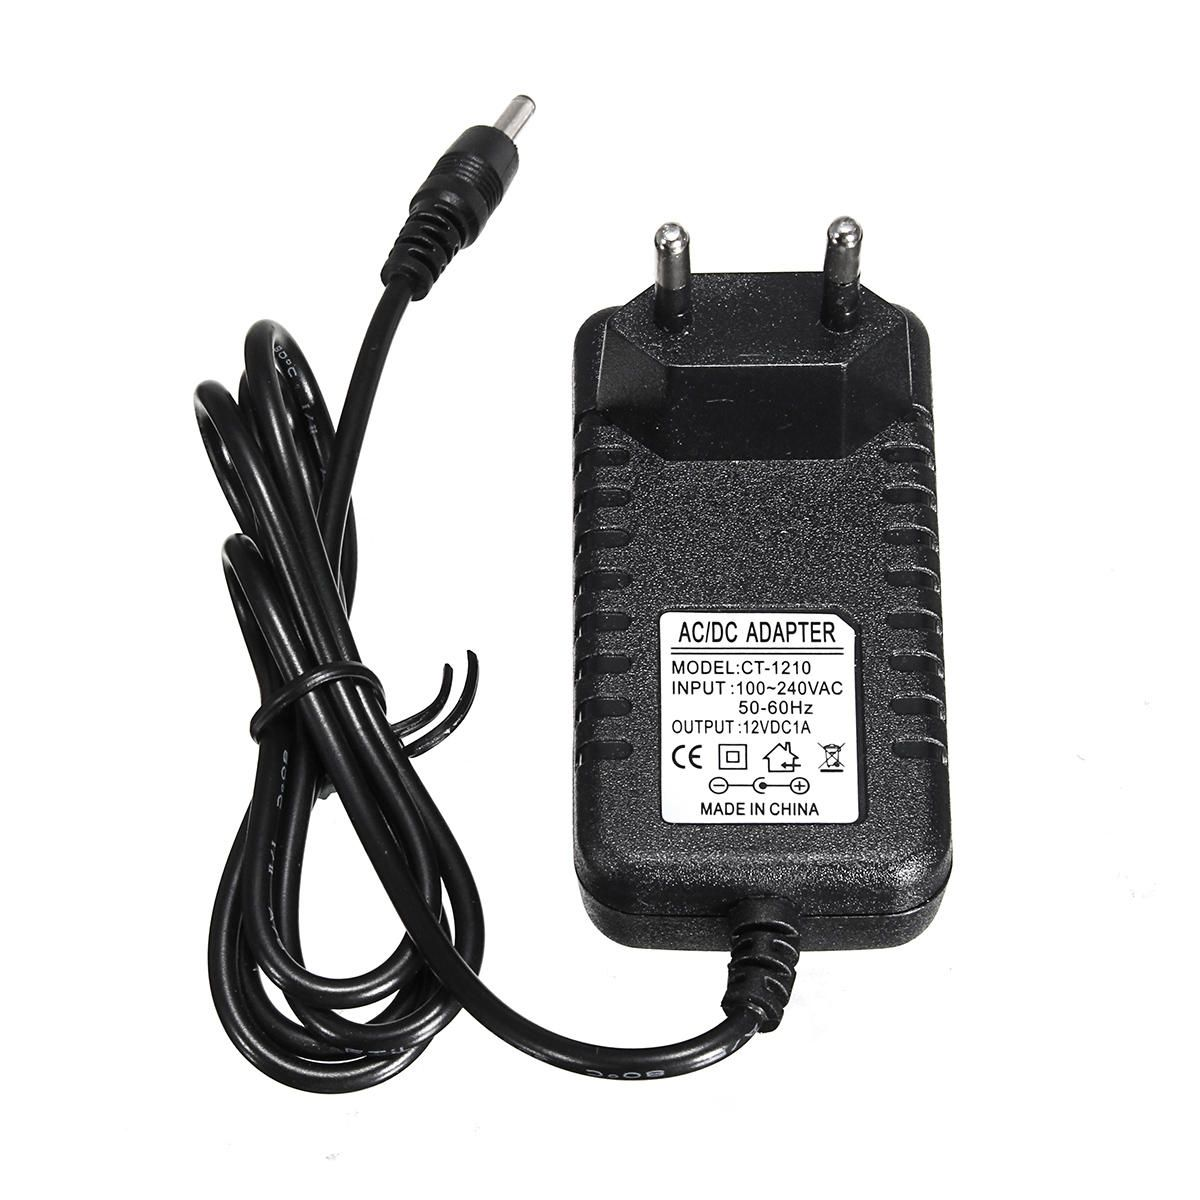 Ac 100v 240v Power Supply Charger Eu Plug Power Supply Adapter 1 35 3 5mm Dc Head Electrical Equipment Supplies From Industrial Scientific On Banggood Com Power Supply Charger Wireless Router